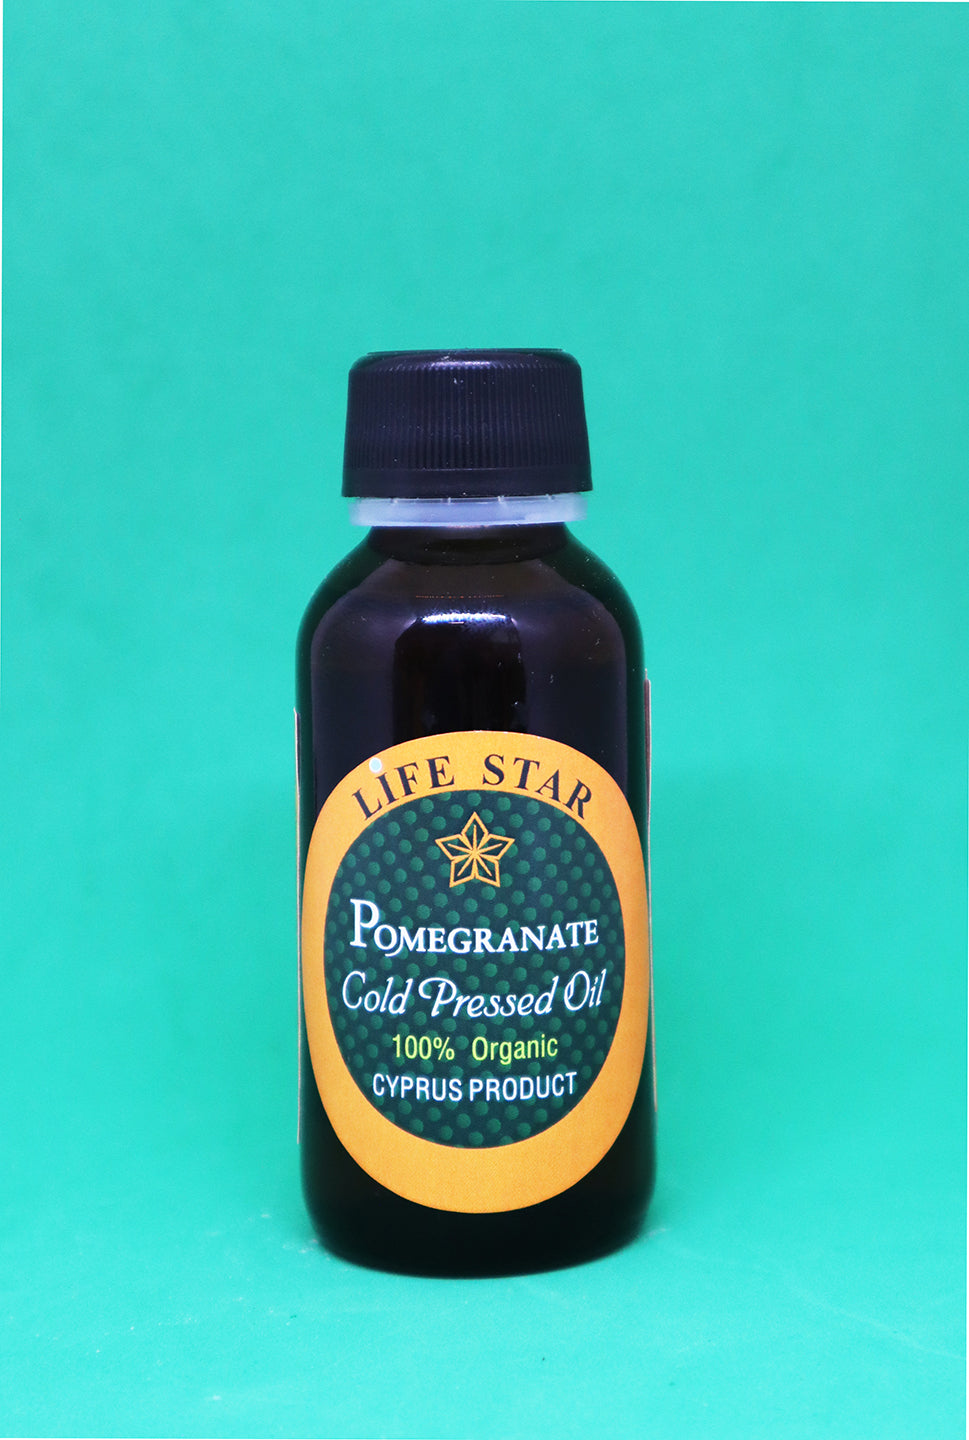 Pomegranate Cold Pressed Oil